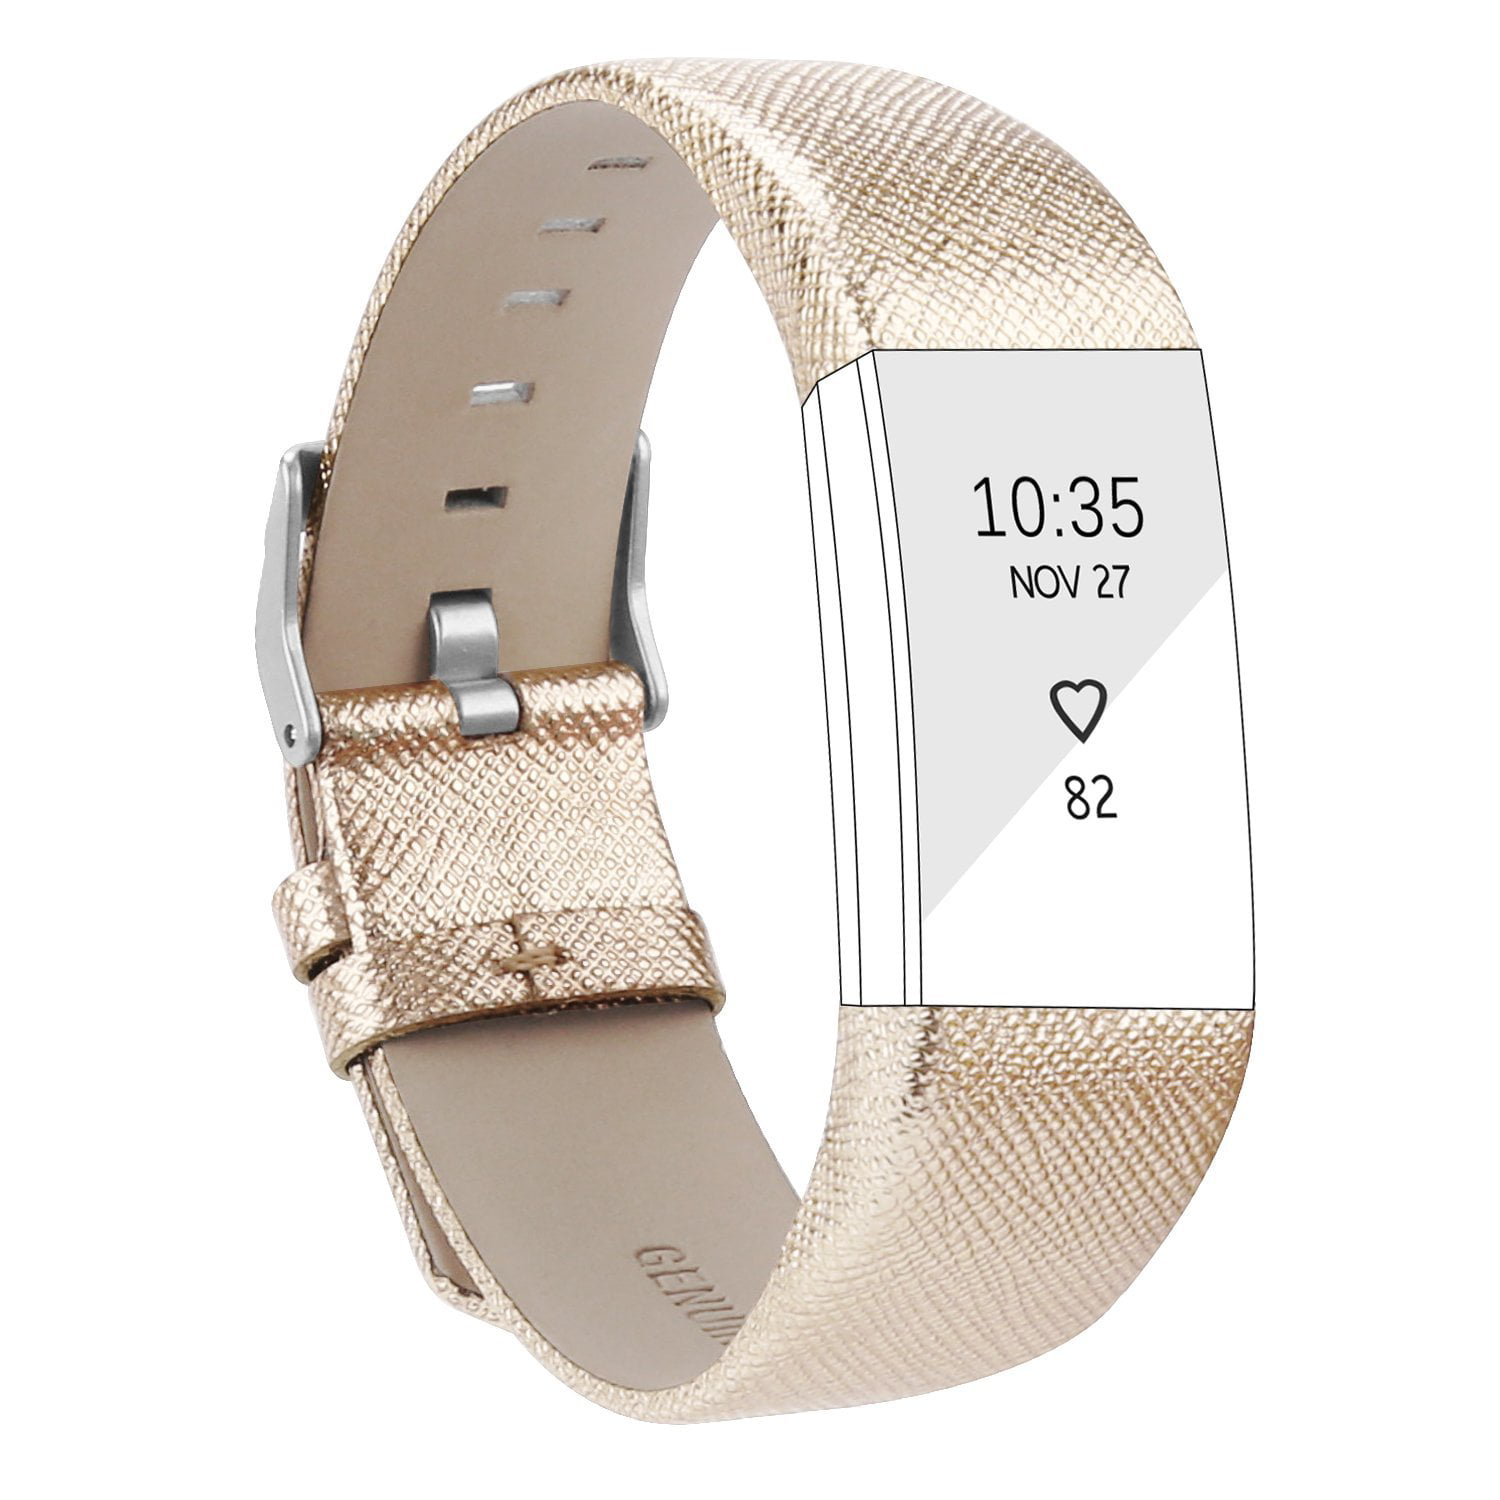 AdePoy Bands for Fitbit Charge 2 Replacement Leather Sport Strap for Charge 2 Wristband by AdePoy